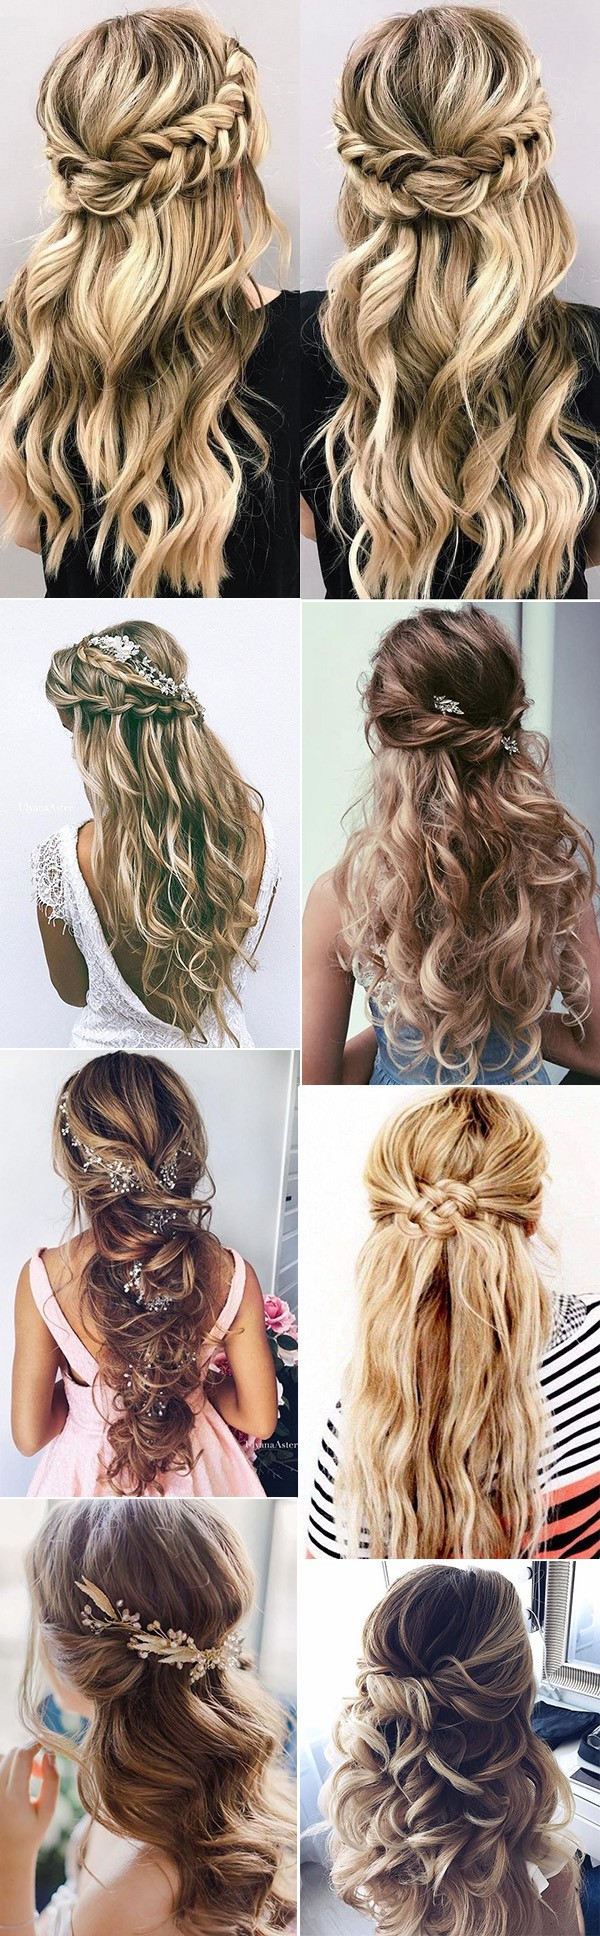 15 Chic Half Up Half Down Wedding Hairstyles for Long Hair ...